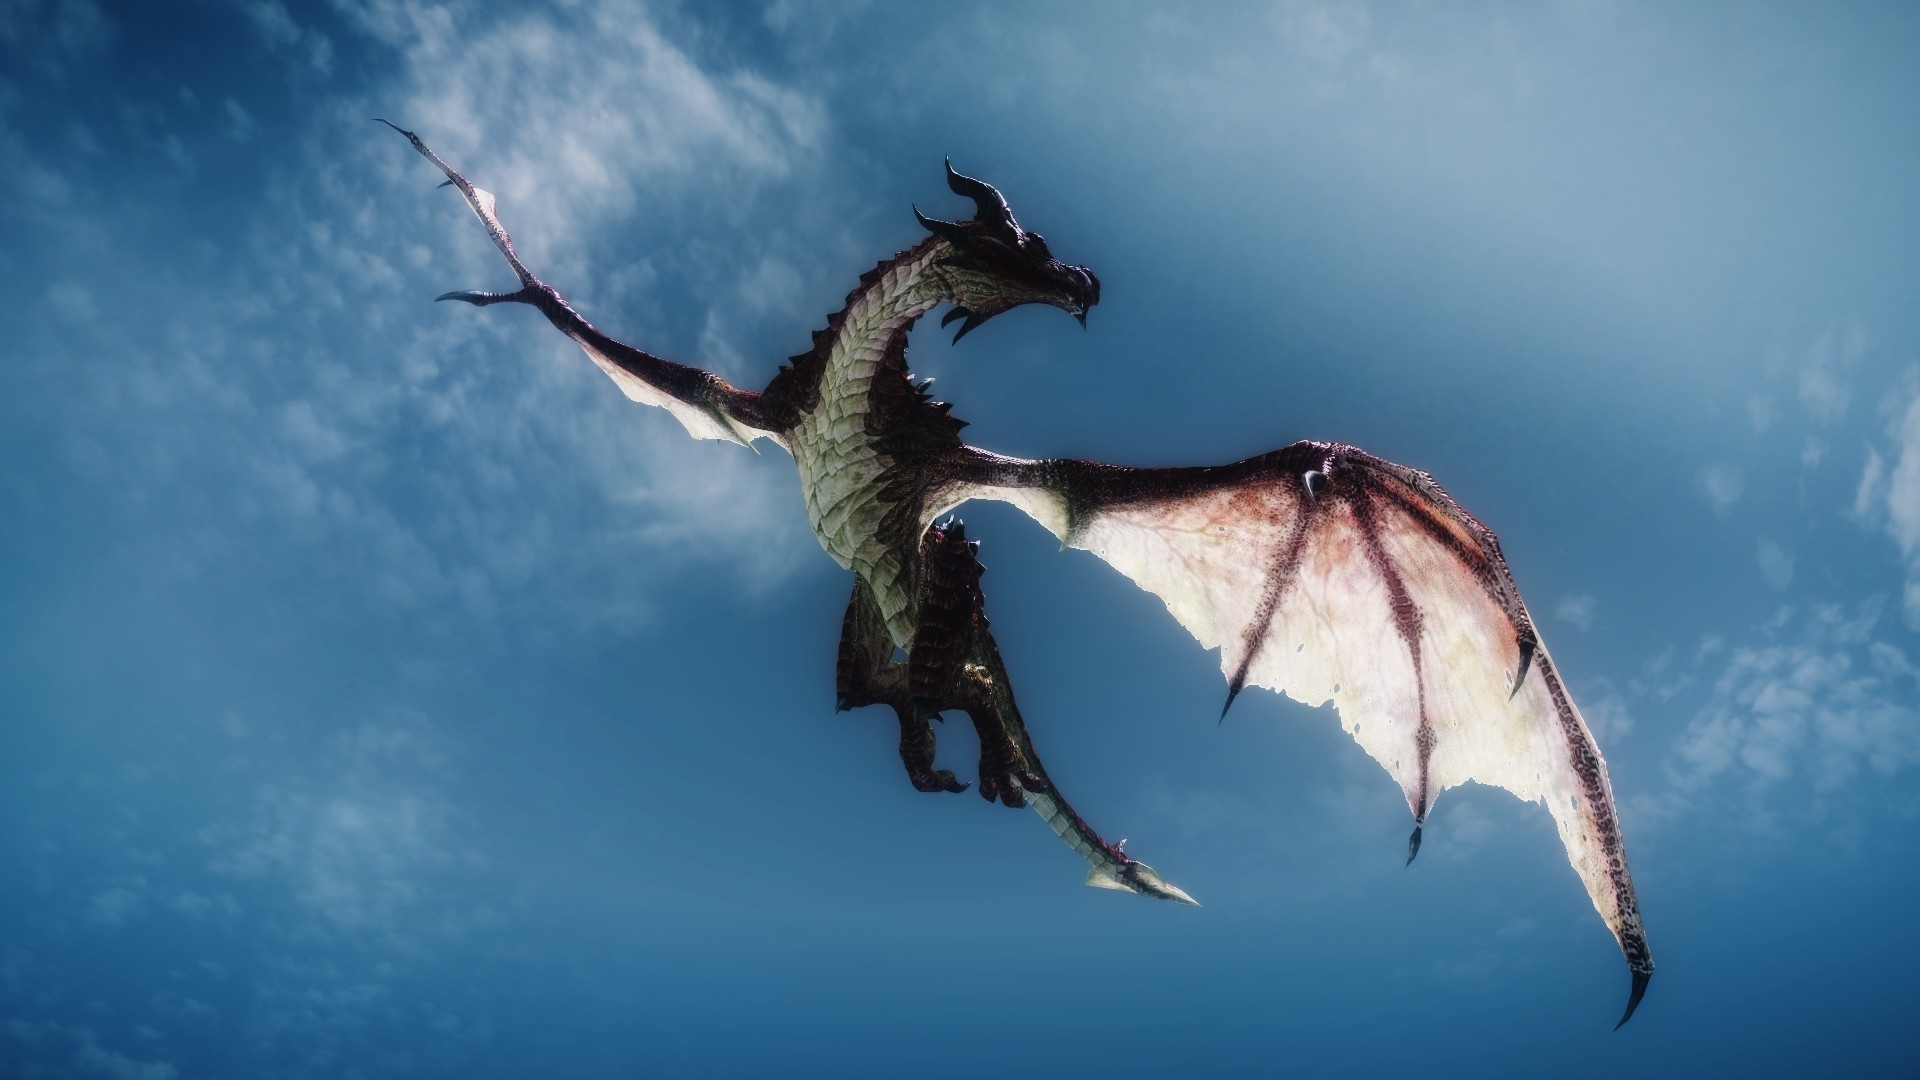 skyrim dragon flying | dragons | pinterest | skyrim dragon, dragons